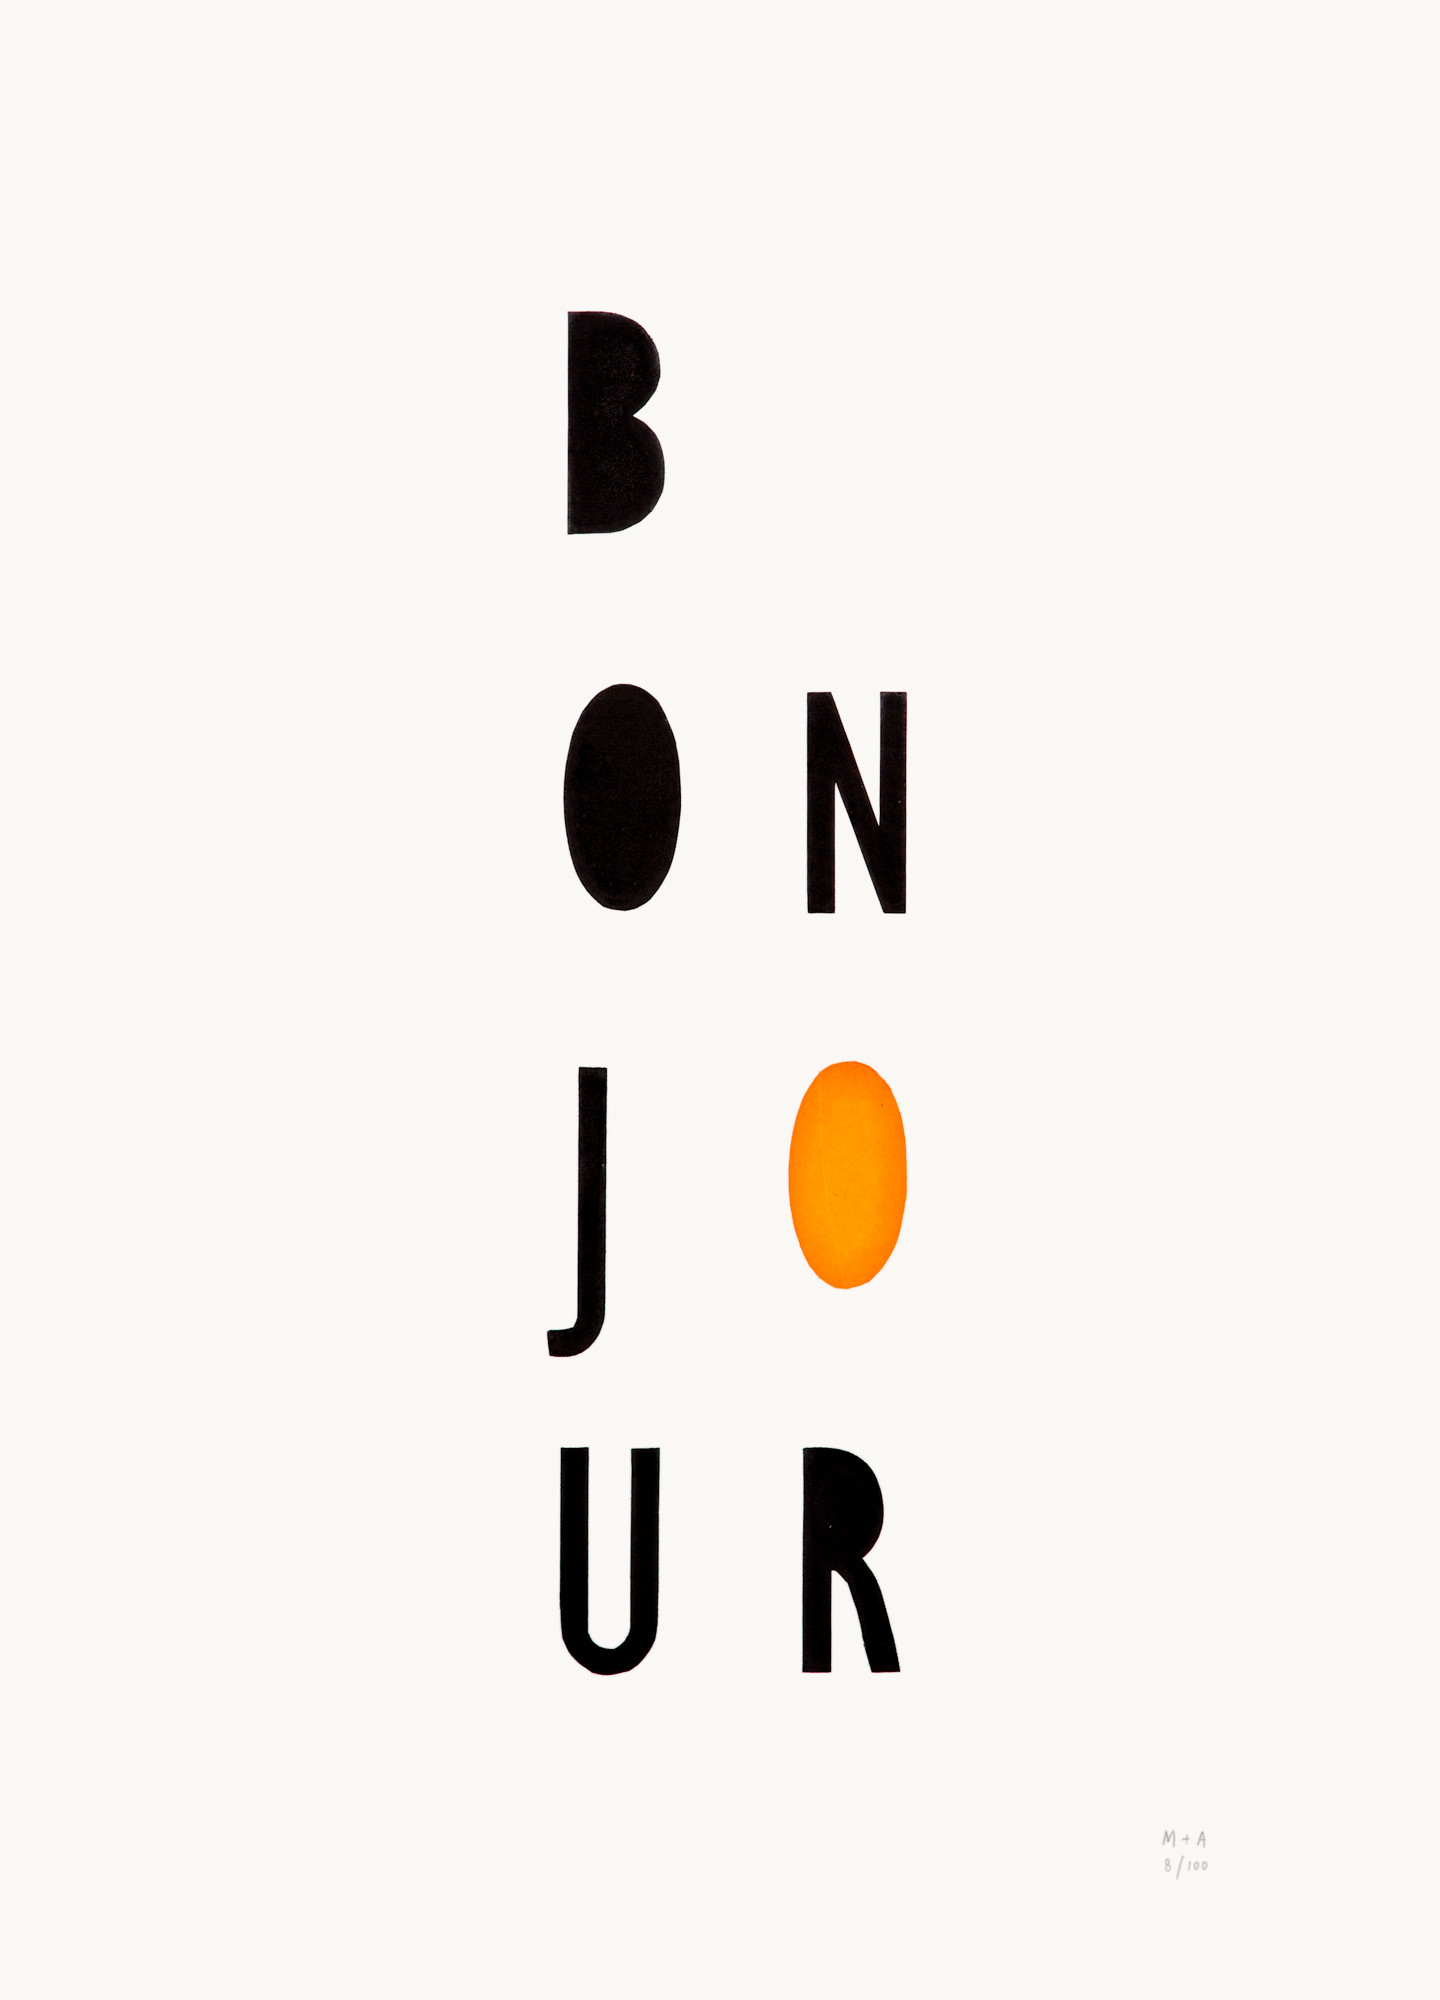 orange-bonjour-neon-geometric-limited-edition-screen-print-on-paper